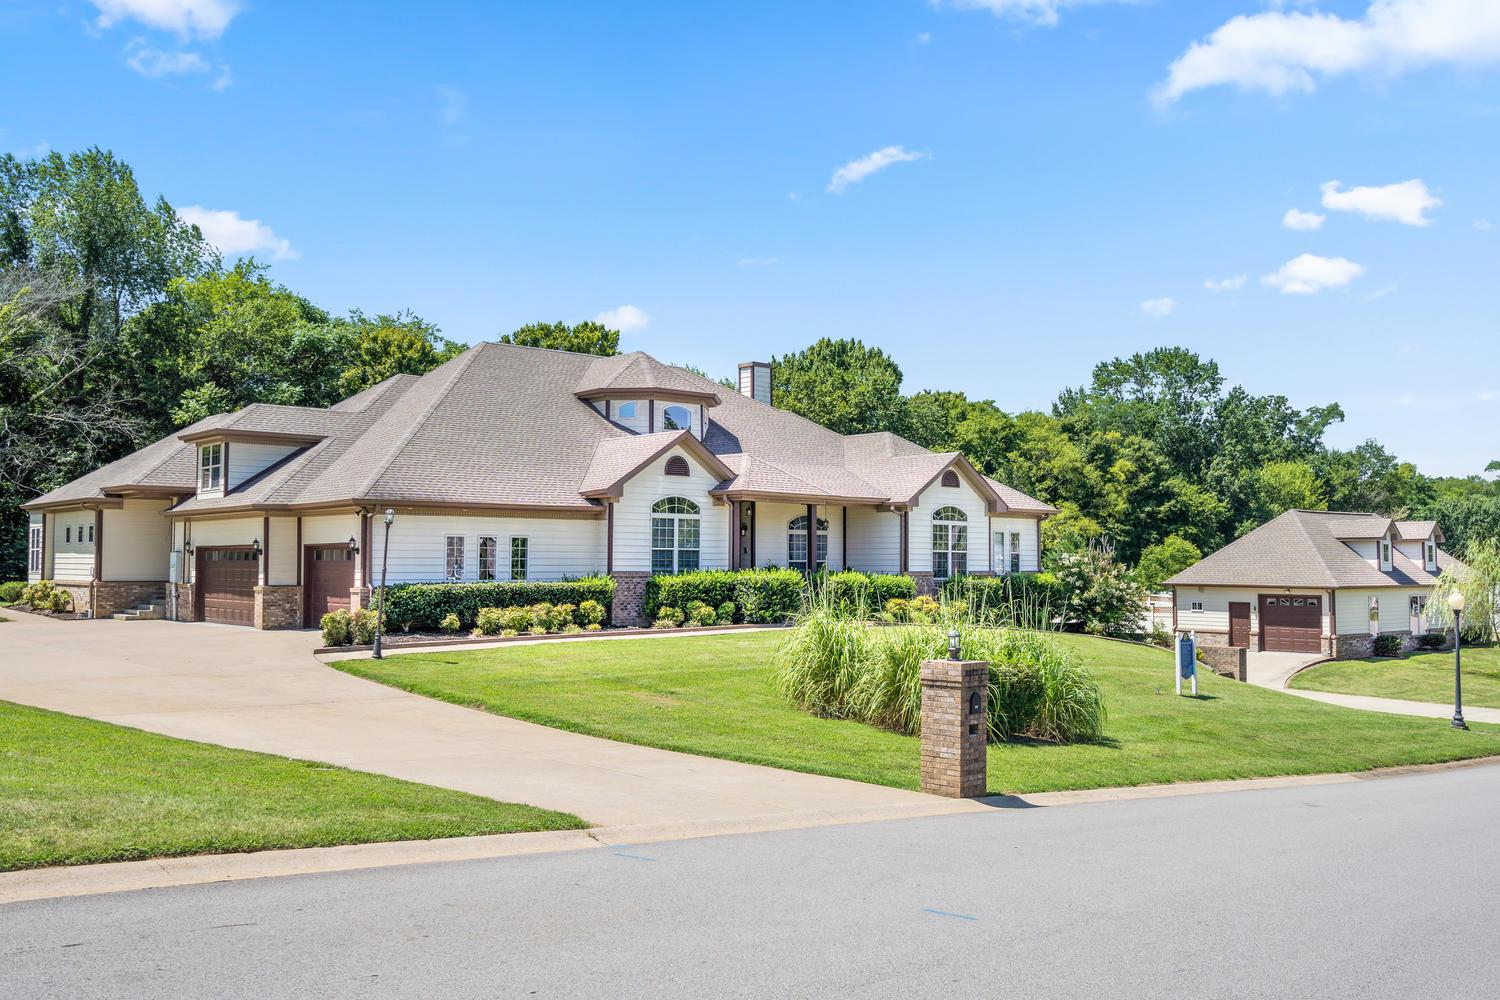 1590 Rembrandt Dr, Fort Campbell in Montgomery County County, TN 37040 Home for Sale